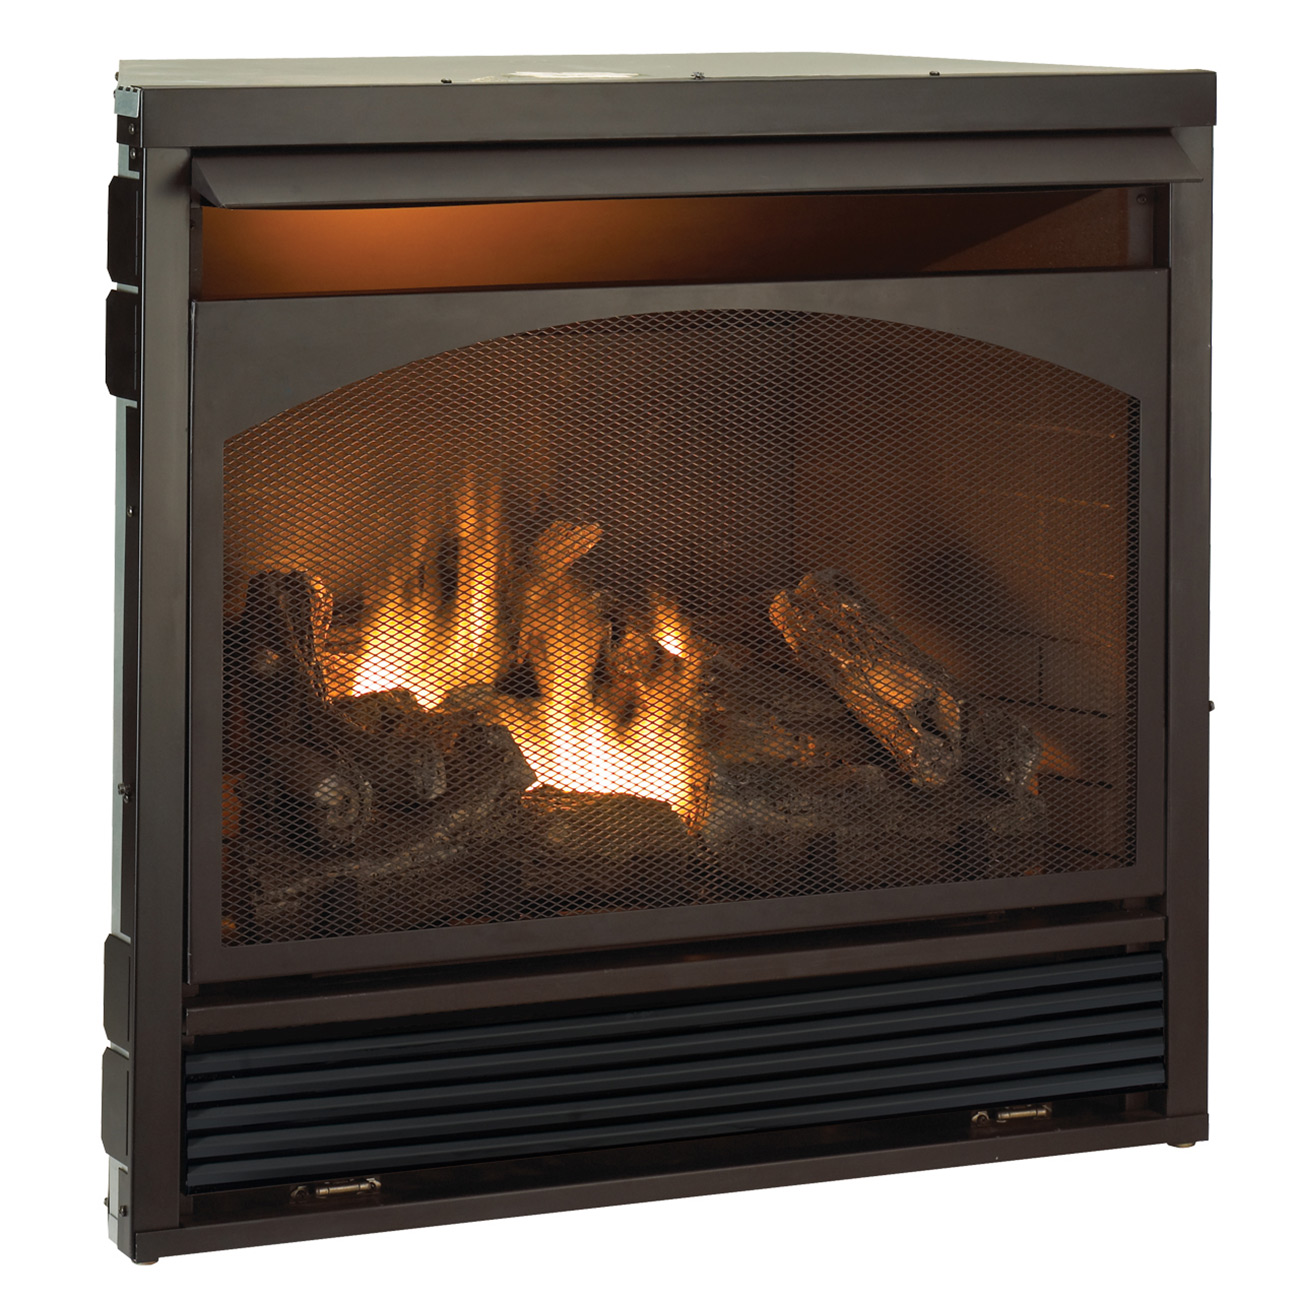 Gas Fireplace Insert Dual Fuel Technology With Remote